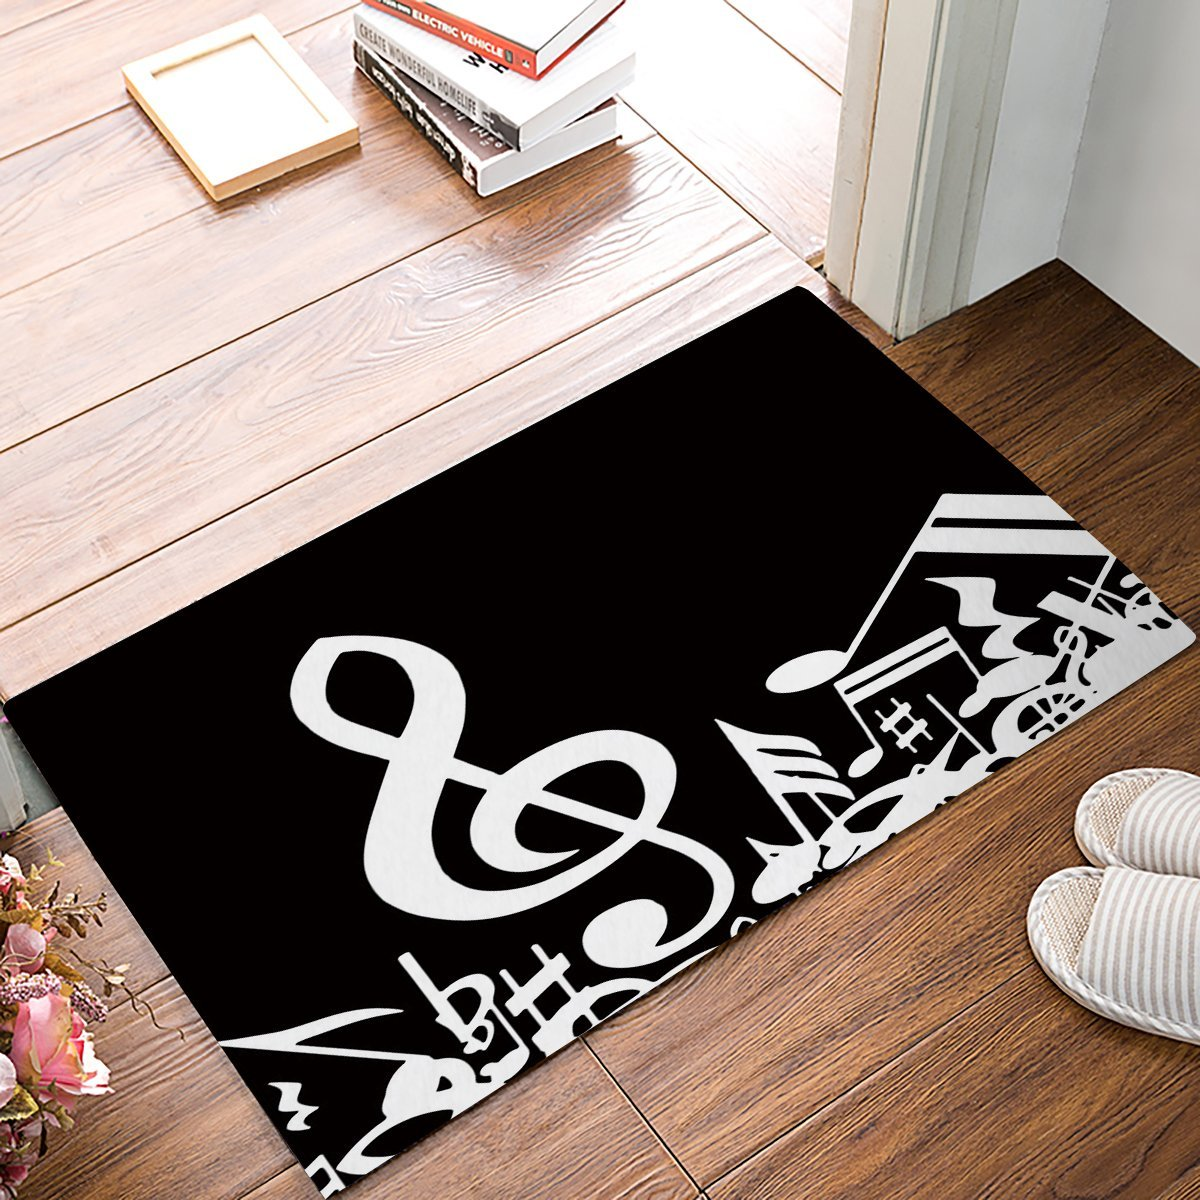 White Kitchen Floor Mats: Custom Melody Black And White Musical Notes Door Mats